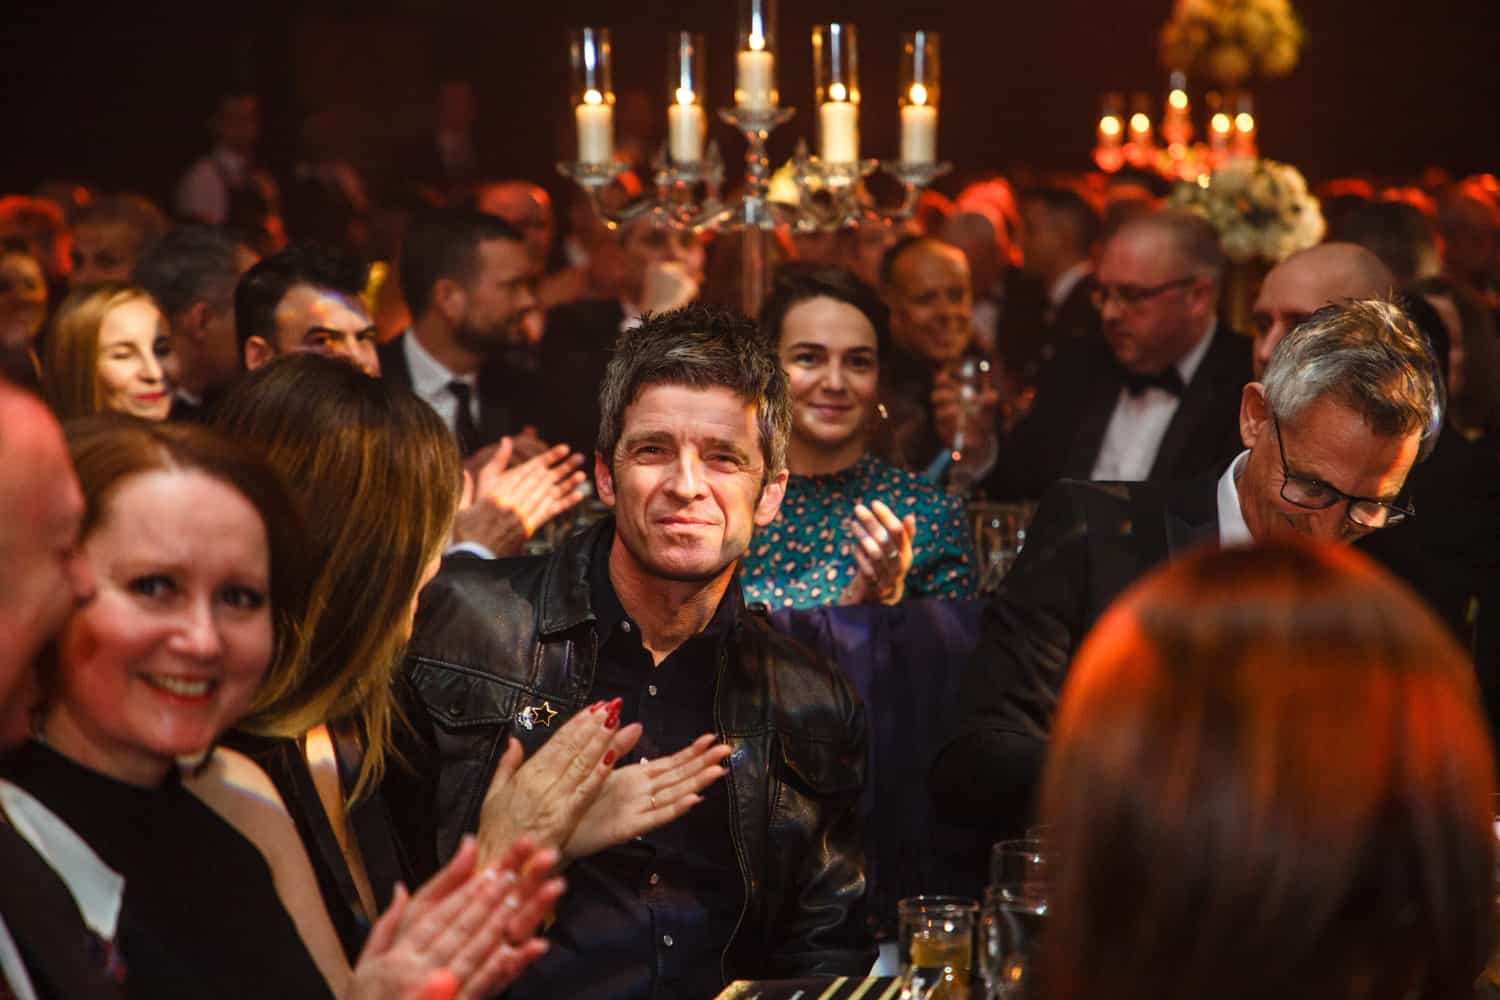 noel gallagher at an event in manchester full of celebrities